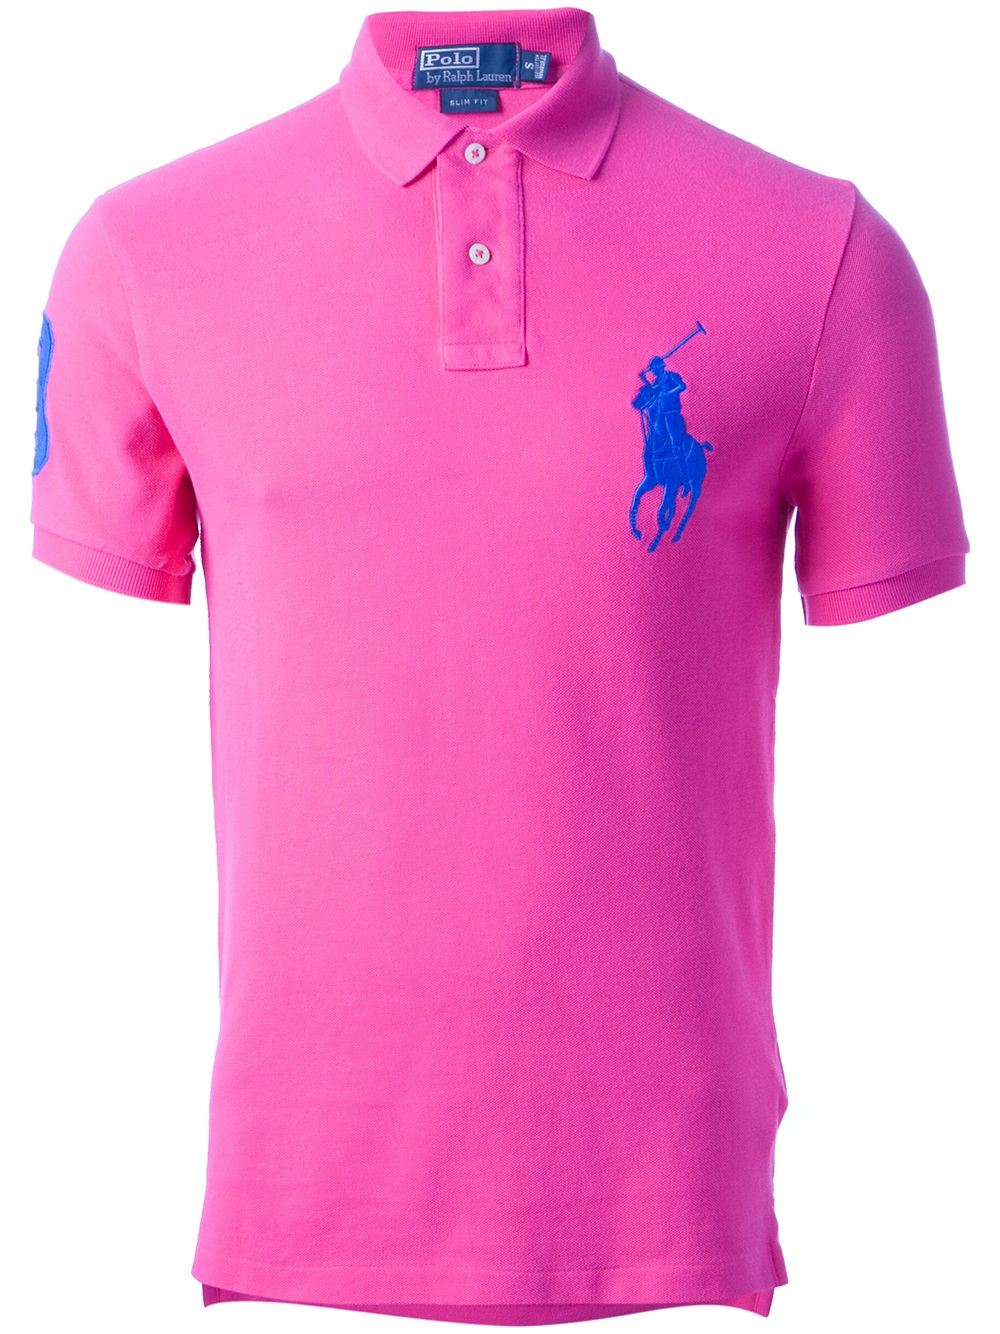 Lyst - Ralph lauren blue label Classic Polo Shirt in Pink for Men